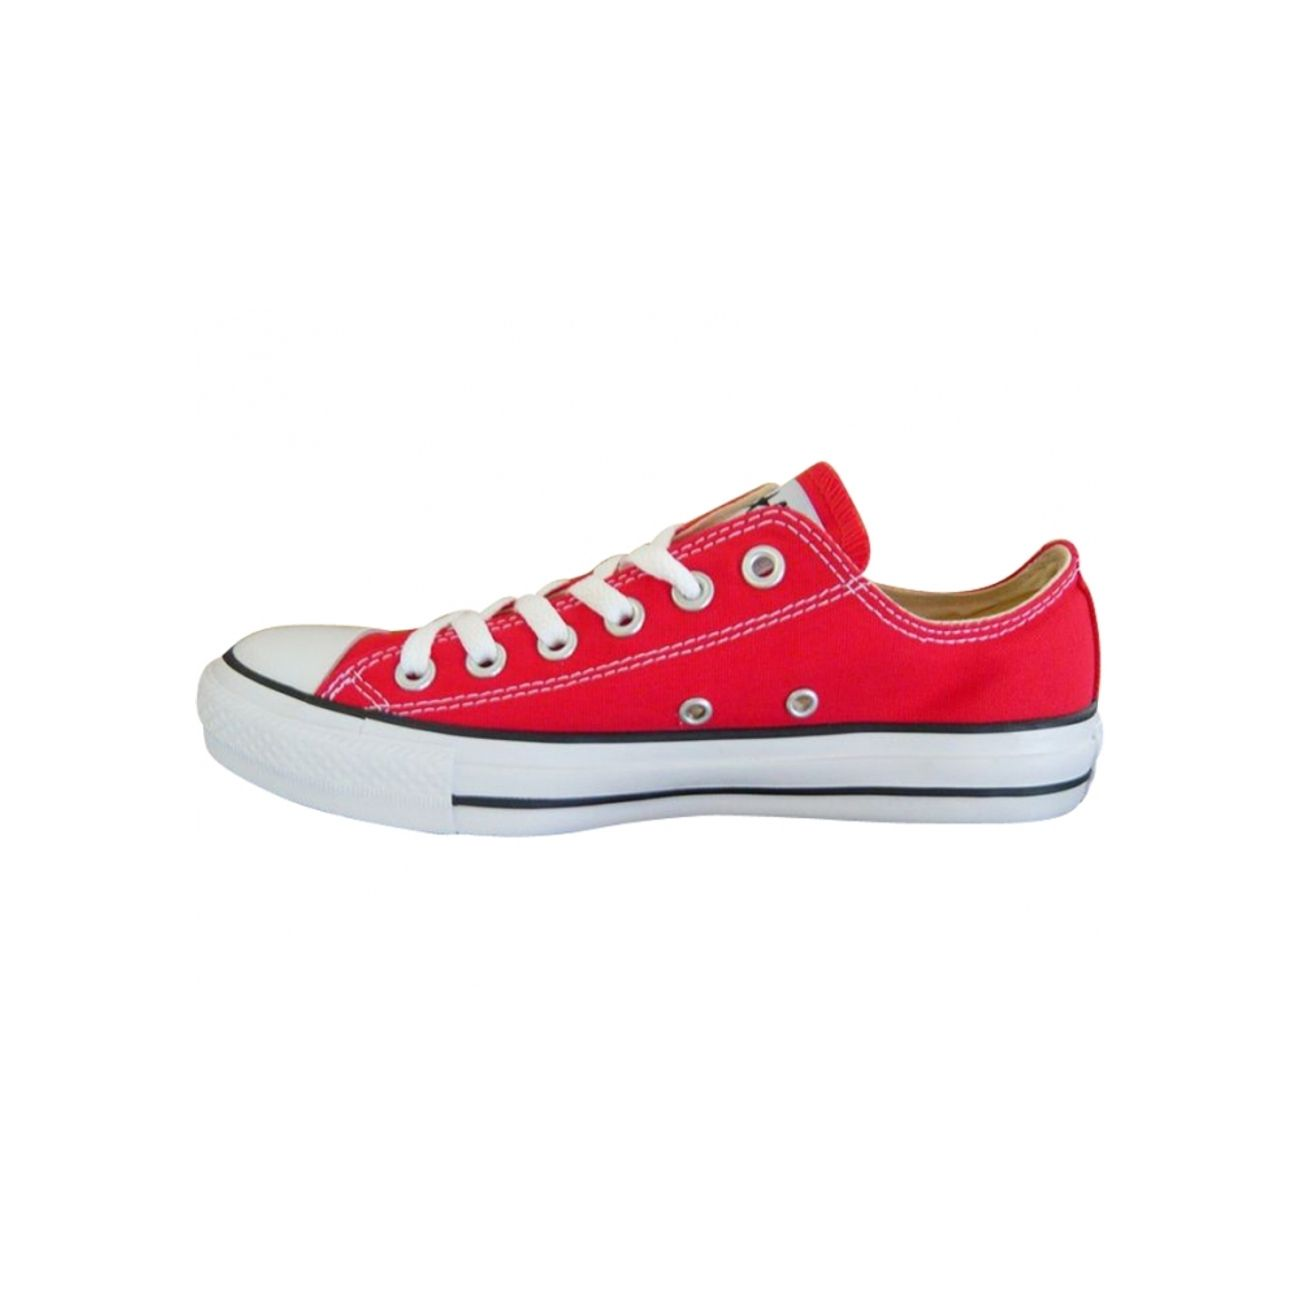 Chuck Homme Ox Converse Taylor Rouge Basket Iy6vYbf7g